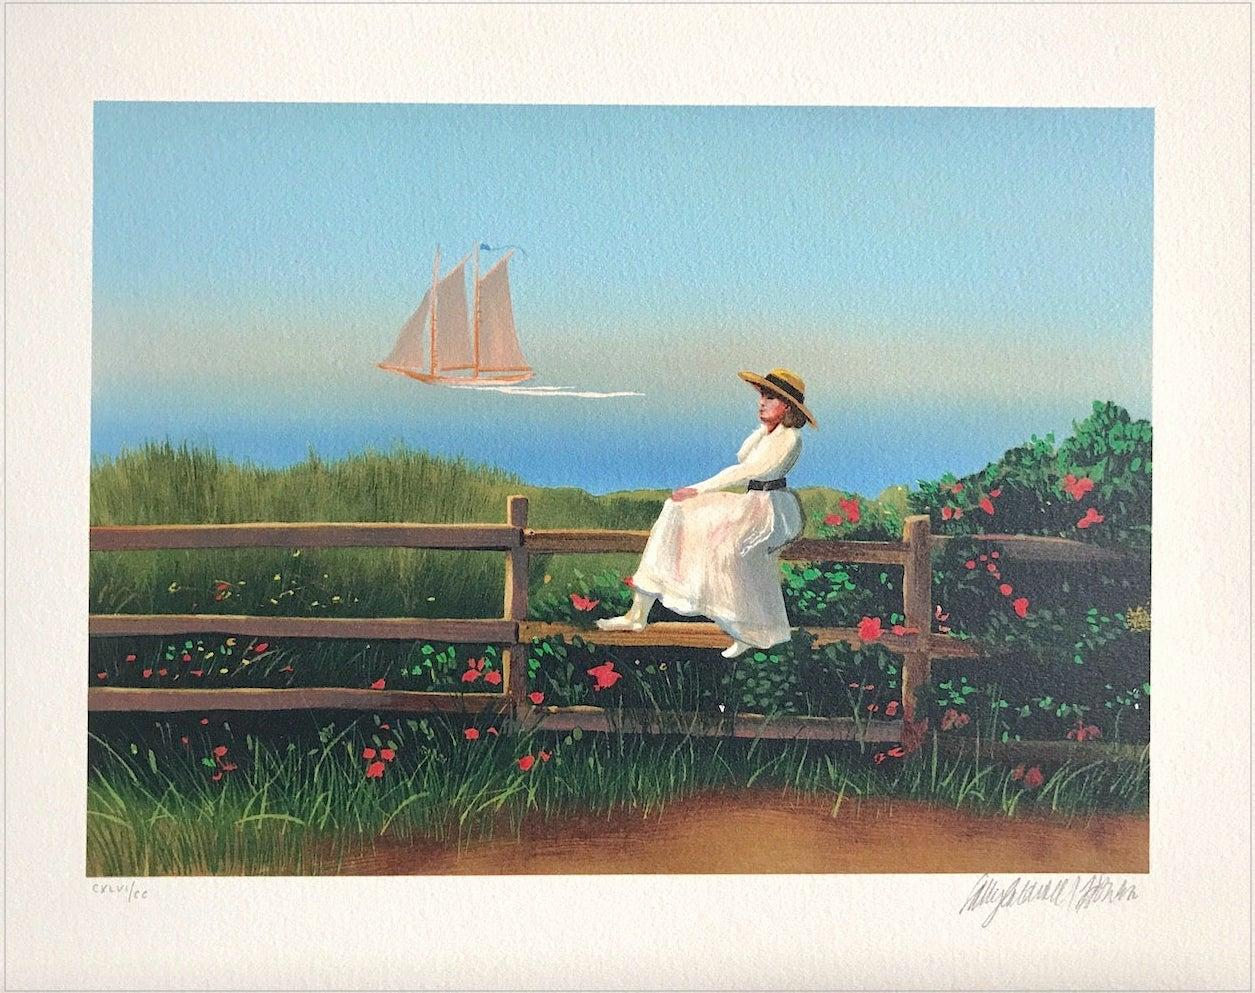 DREAMING Signed Lithograph, Small Portrait, New England Summer, Sailing